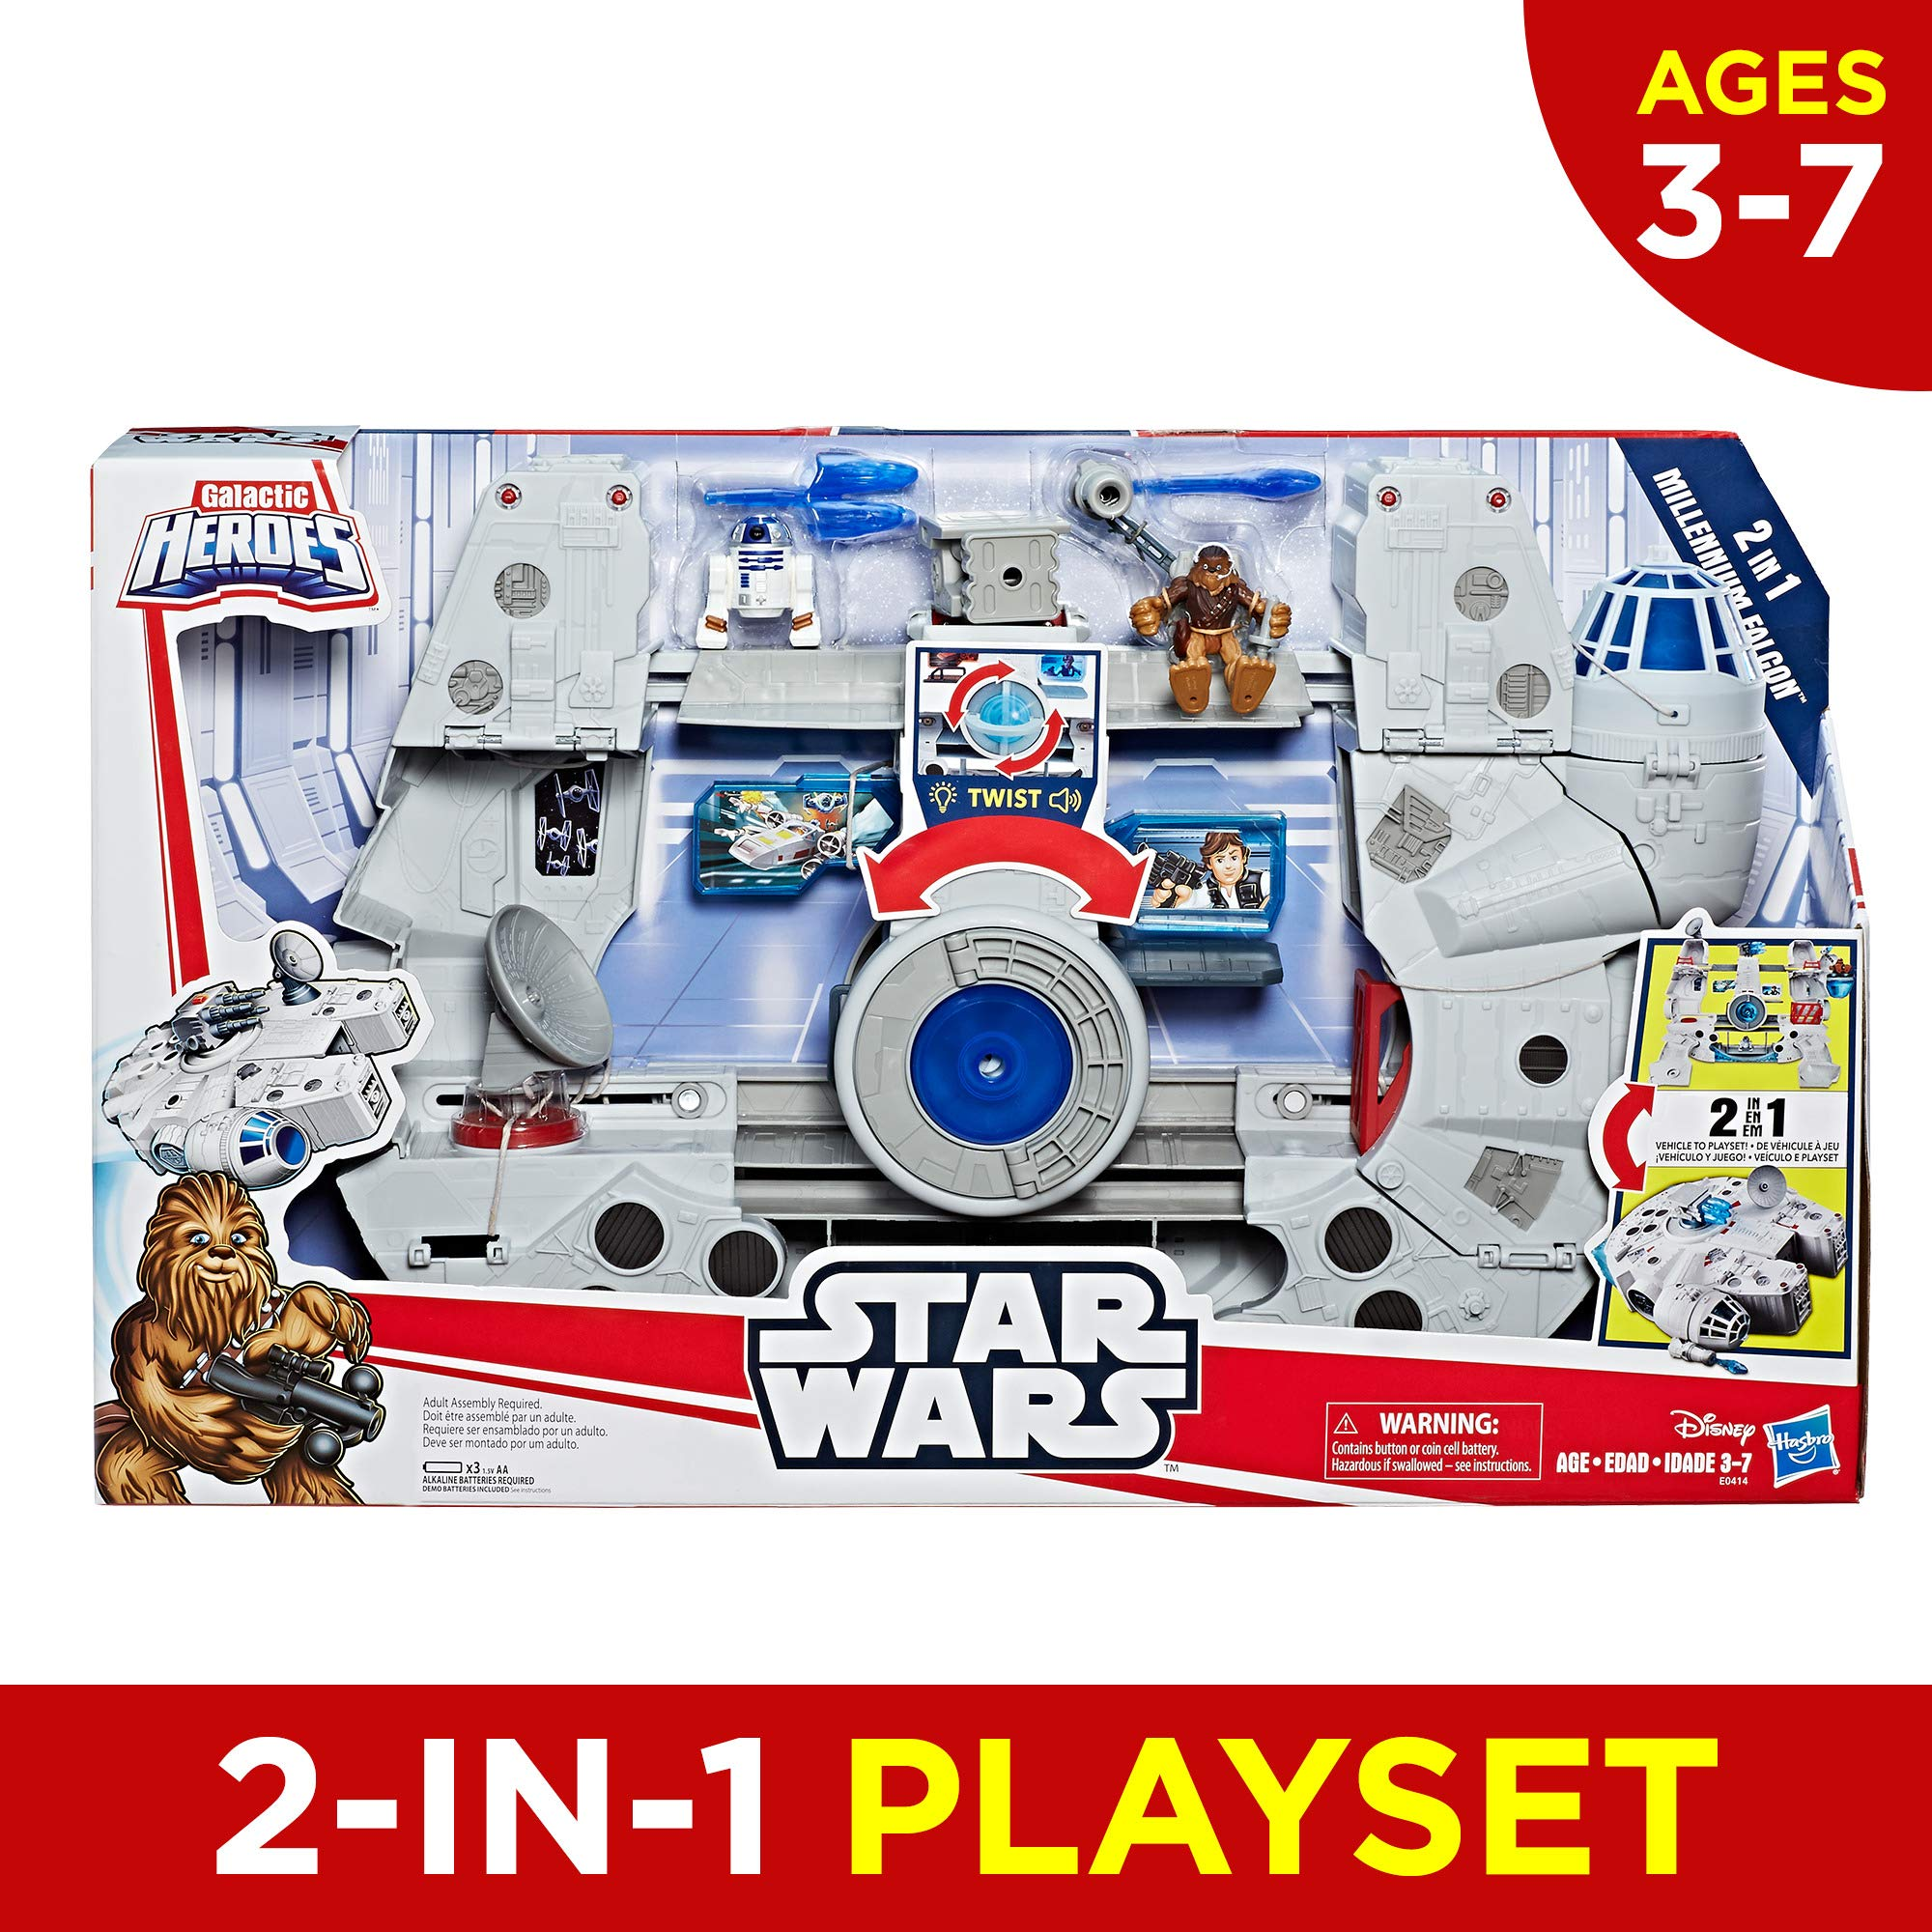 Star Wars Galactic Heroes 2-In-1 Millennium Falcon Vehicle Playset, Chewbacca, R2-D2 2.5-Inch Action Figures, Lights and Sounds, Toys for Kids Ages 3 and Up by Playskool (Image #2)